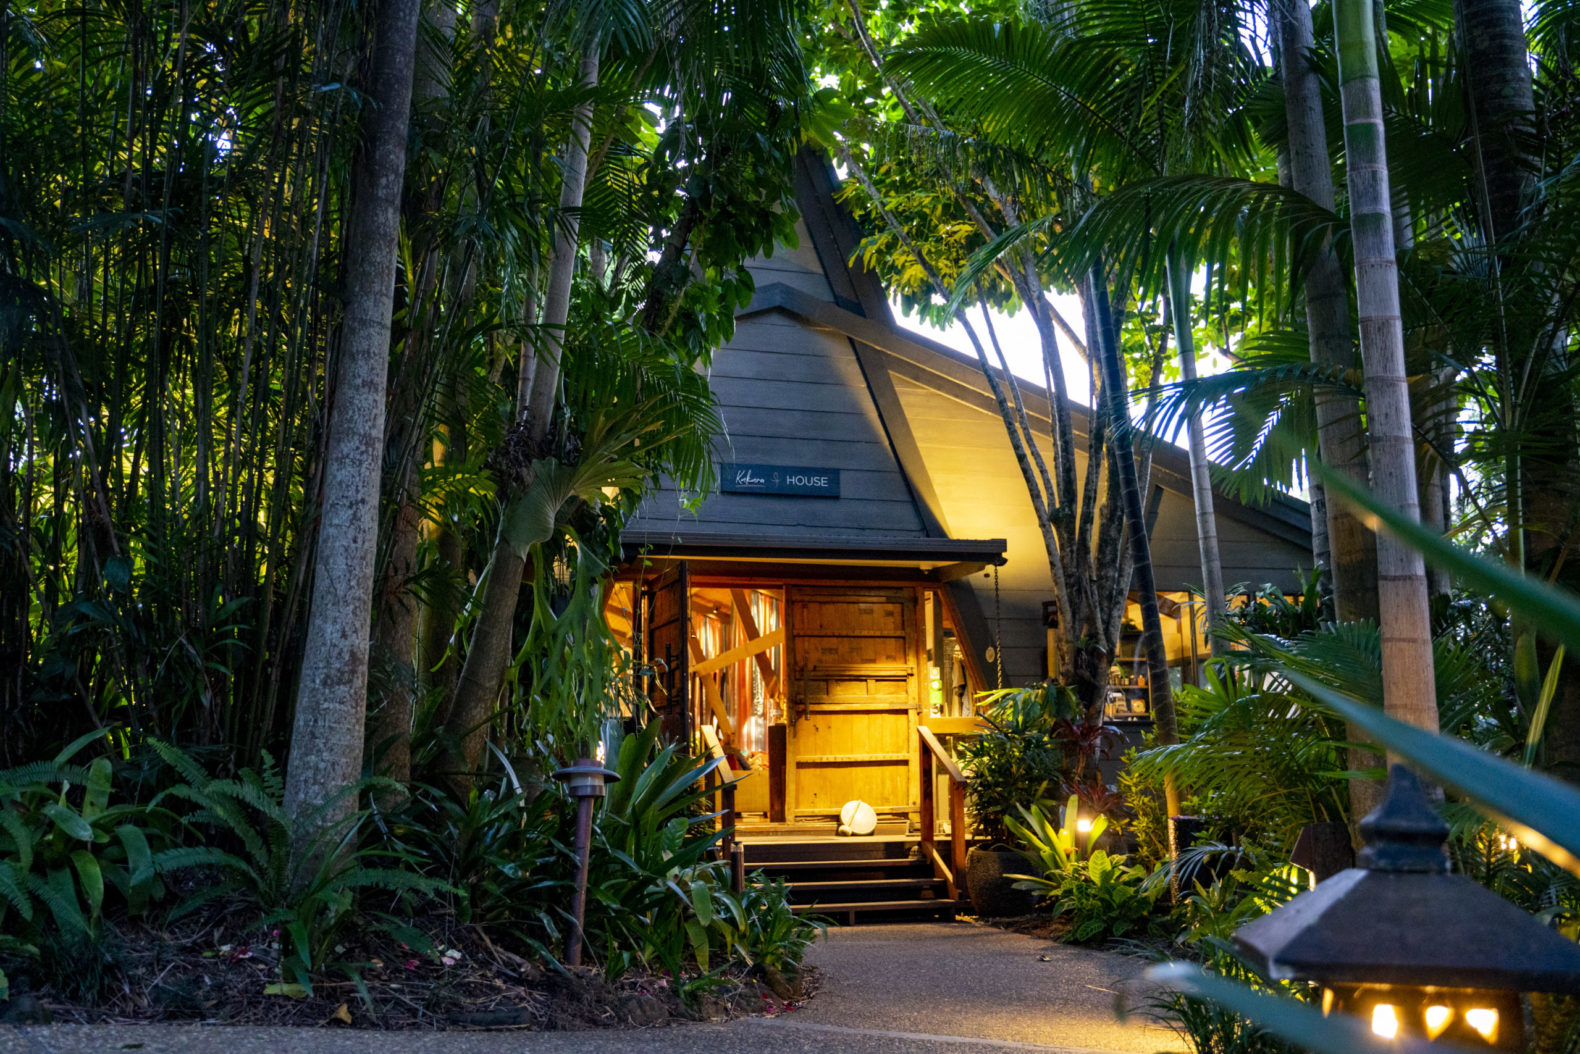 kukura-house-entrance-nature-gaia-retreat-spa-healing-hotel-australia